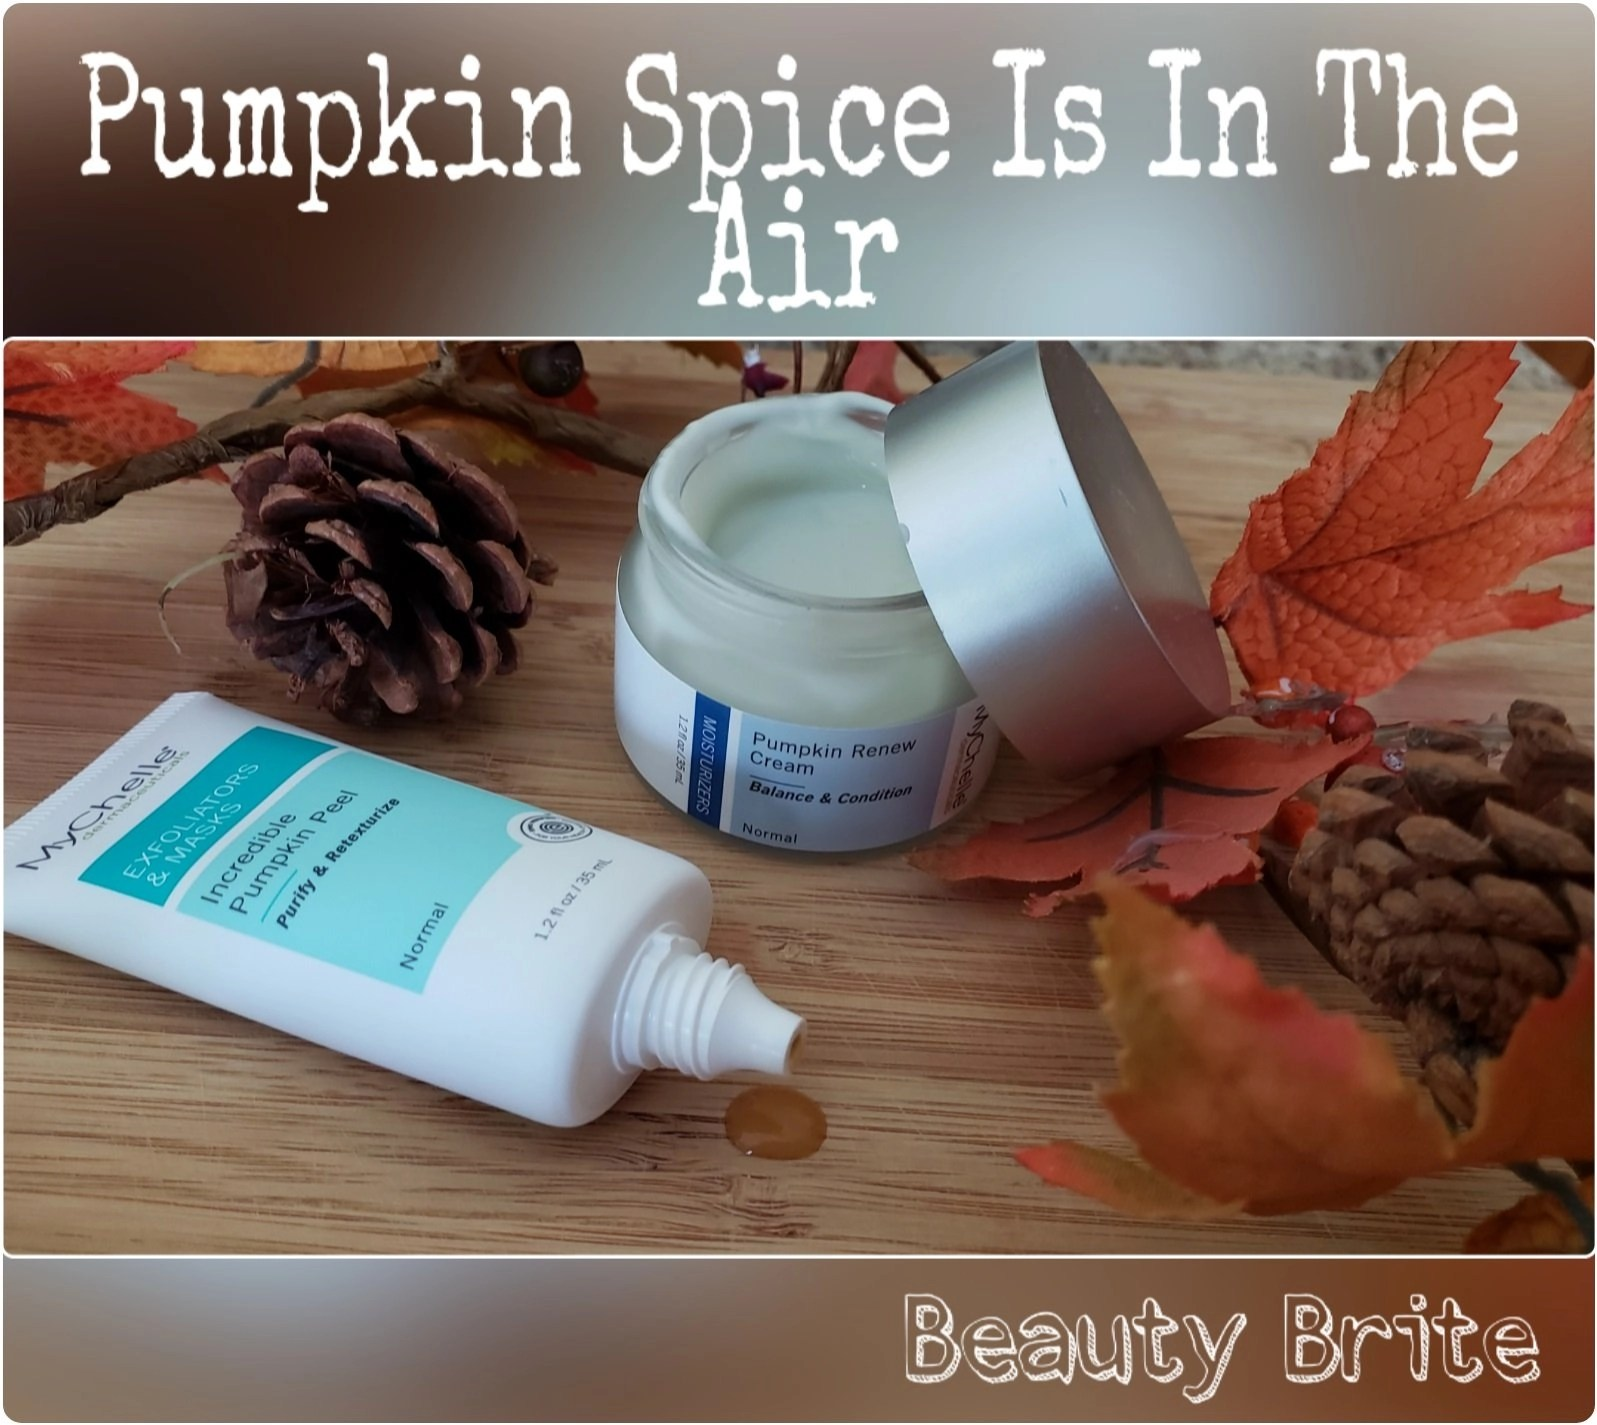 Pumpkin Spice Is In The Air